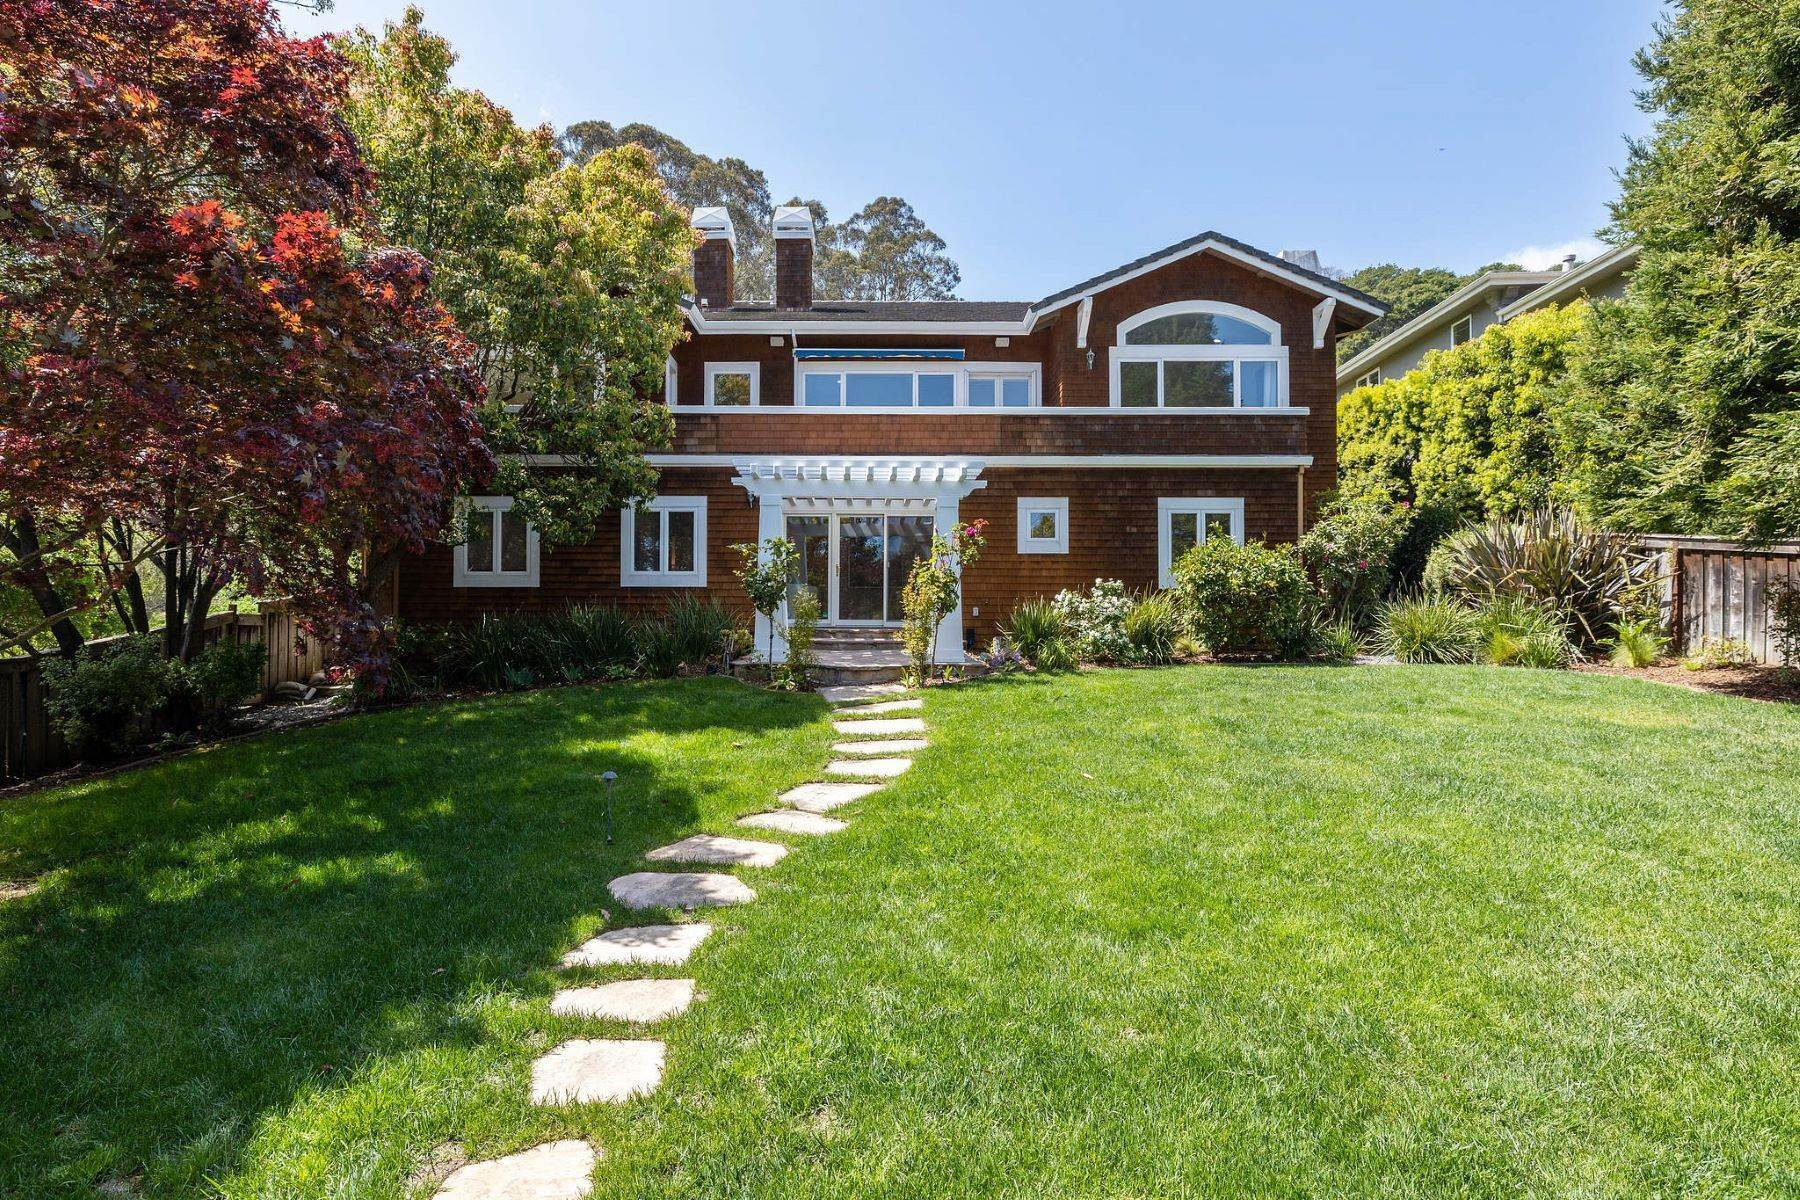 Single Family Homes for Sale at Exceptional Tiburon Home 30 Vista Tiburon Drive Tiburon, California 94920 United States